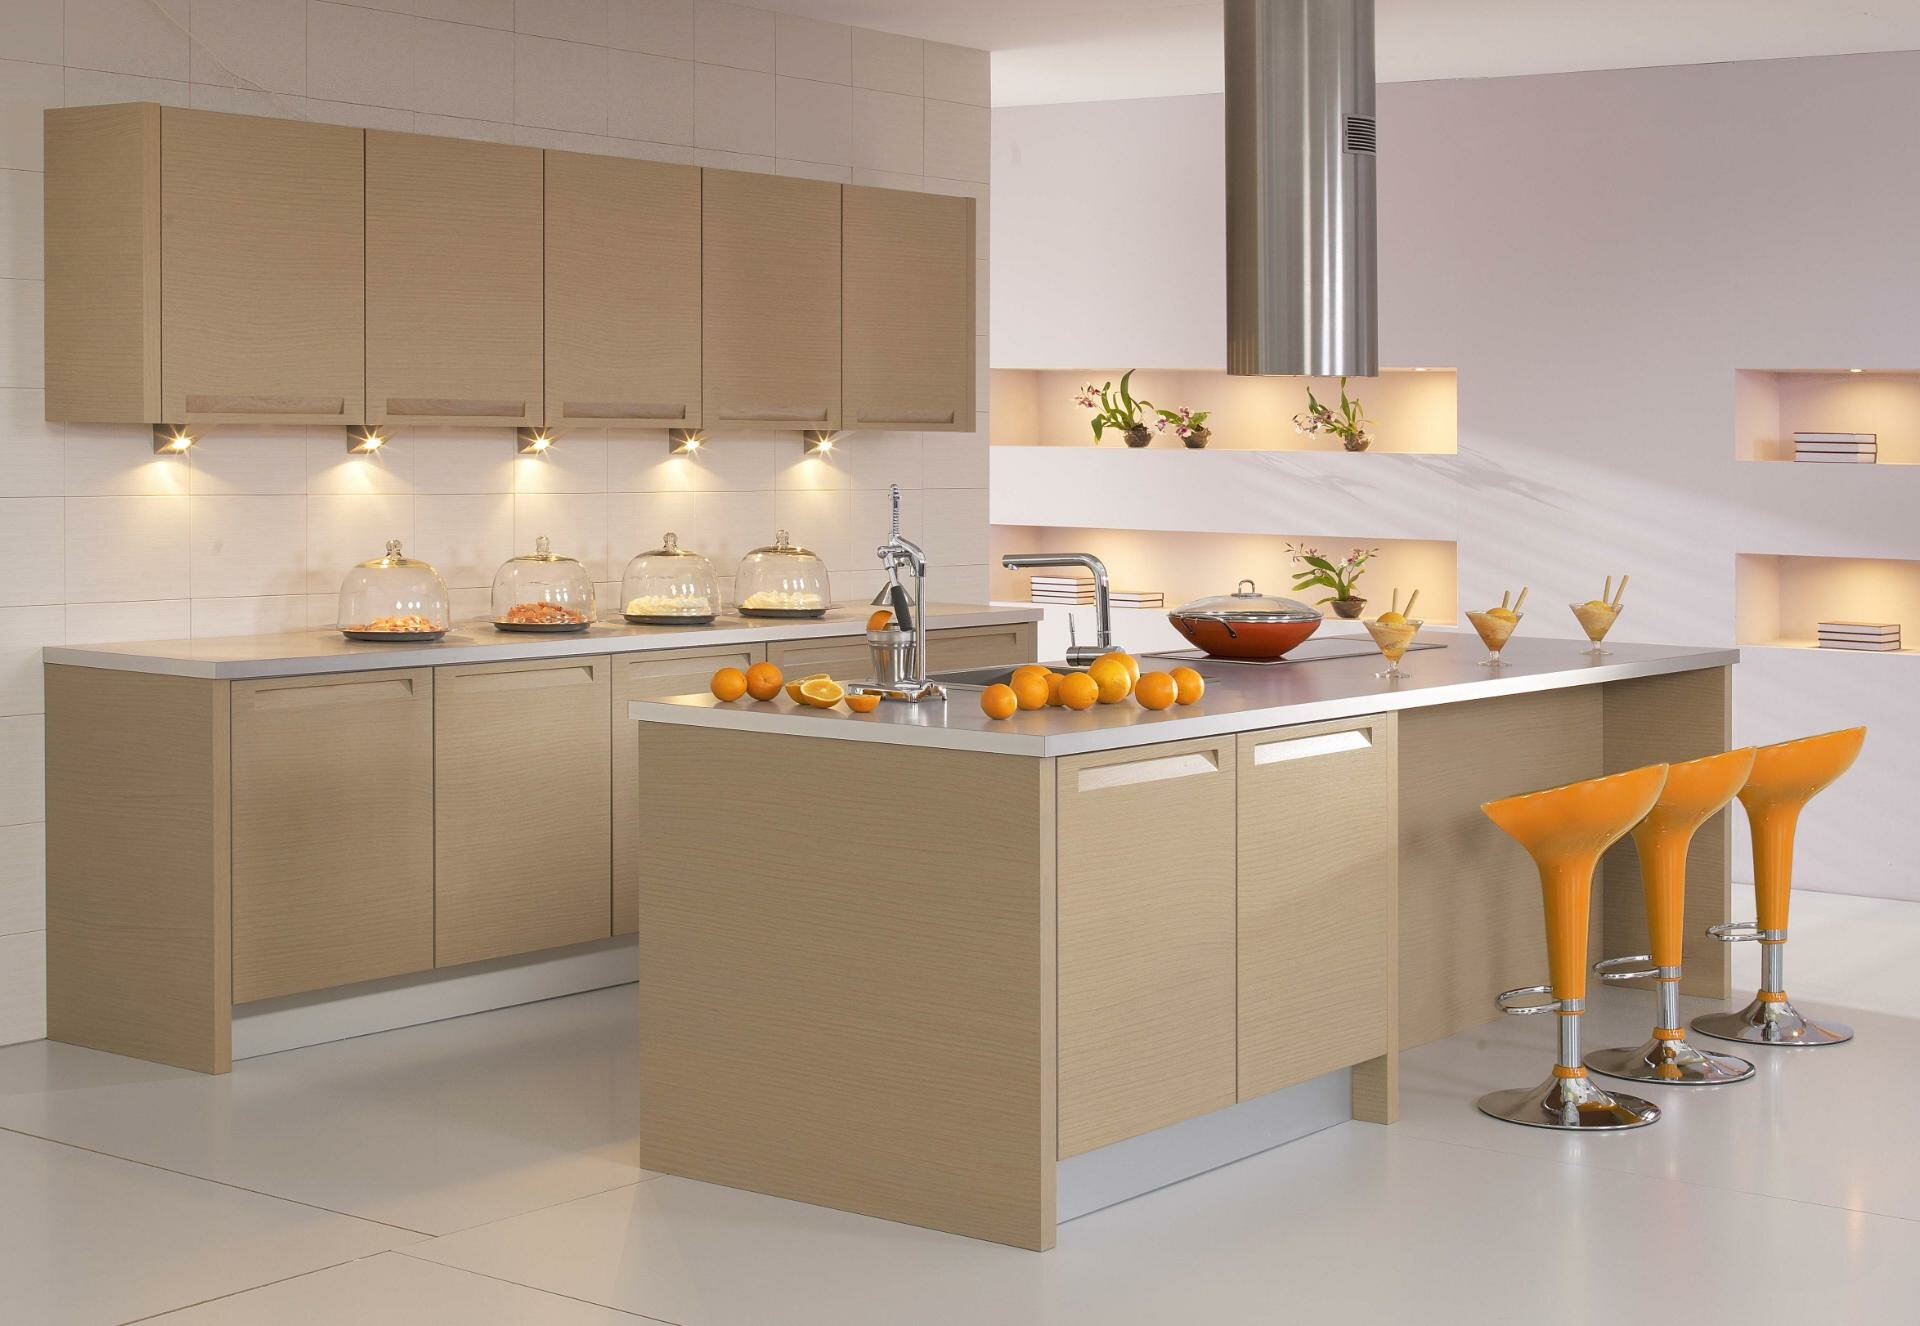 15 great kitchen cabinets that will inspire you for European kitchen cabinets